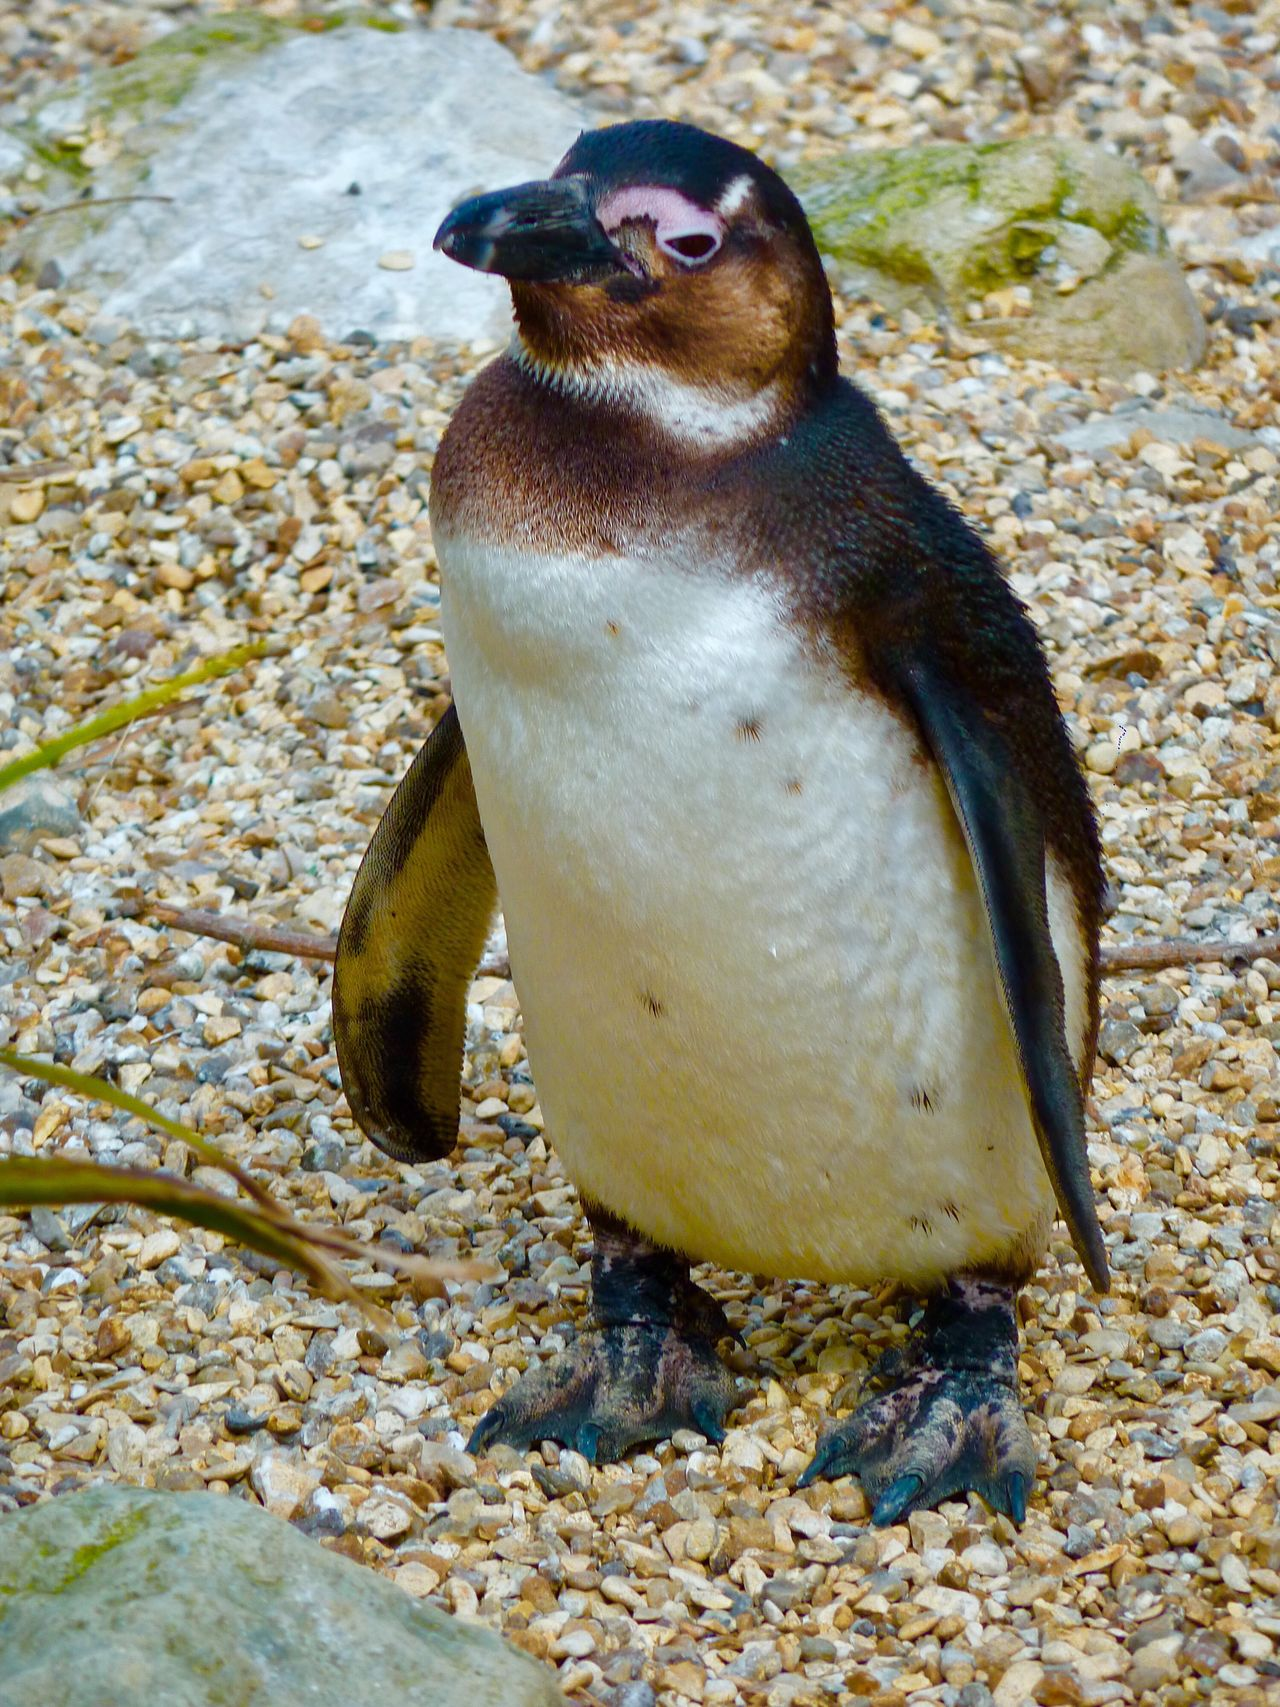 Penguin Whipsnade Zoo One Animal Animals In The Wild Animal Themes Animal Wildlife No People Day Beach Sea Lion Outdoors Sand Sea Life Nature Close-up Bird Water Mammal